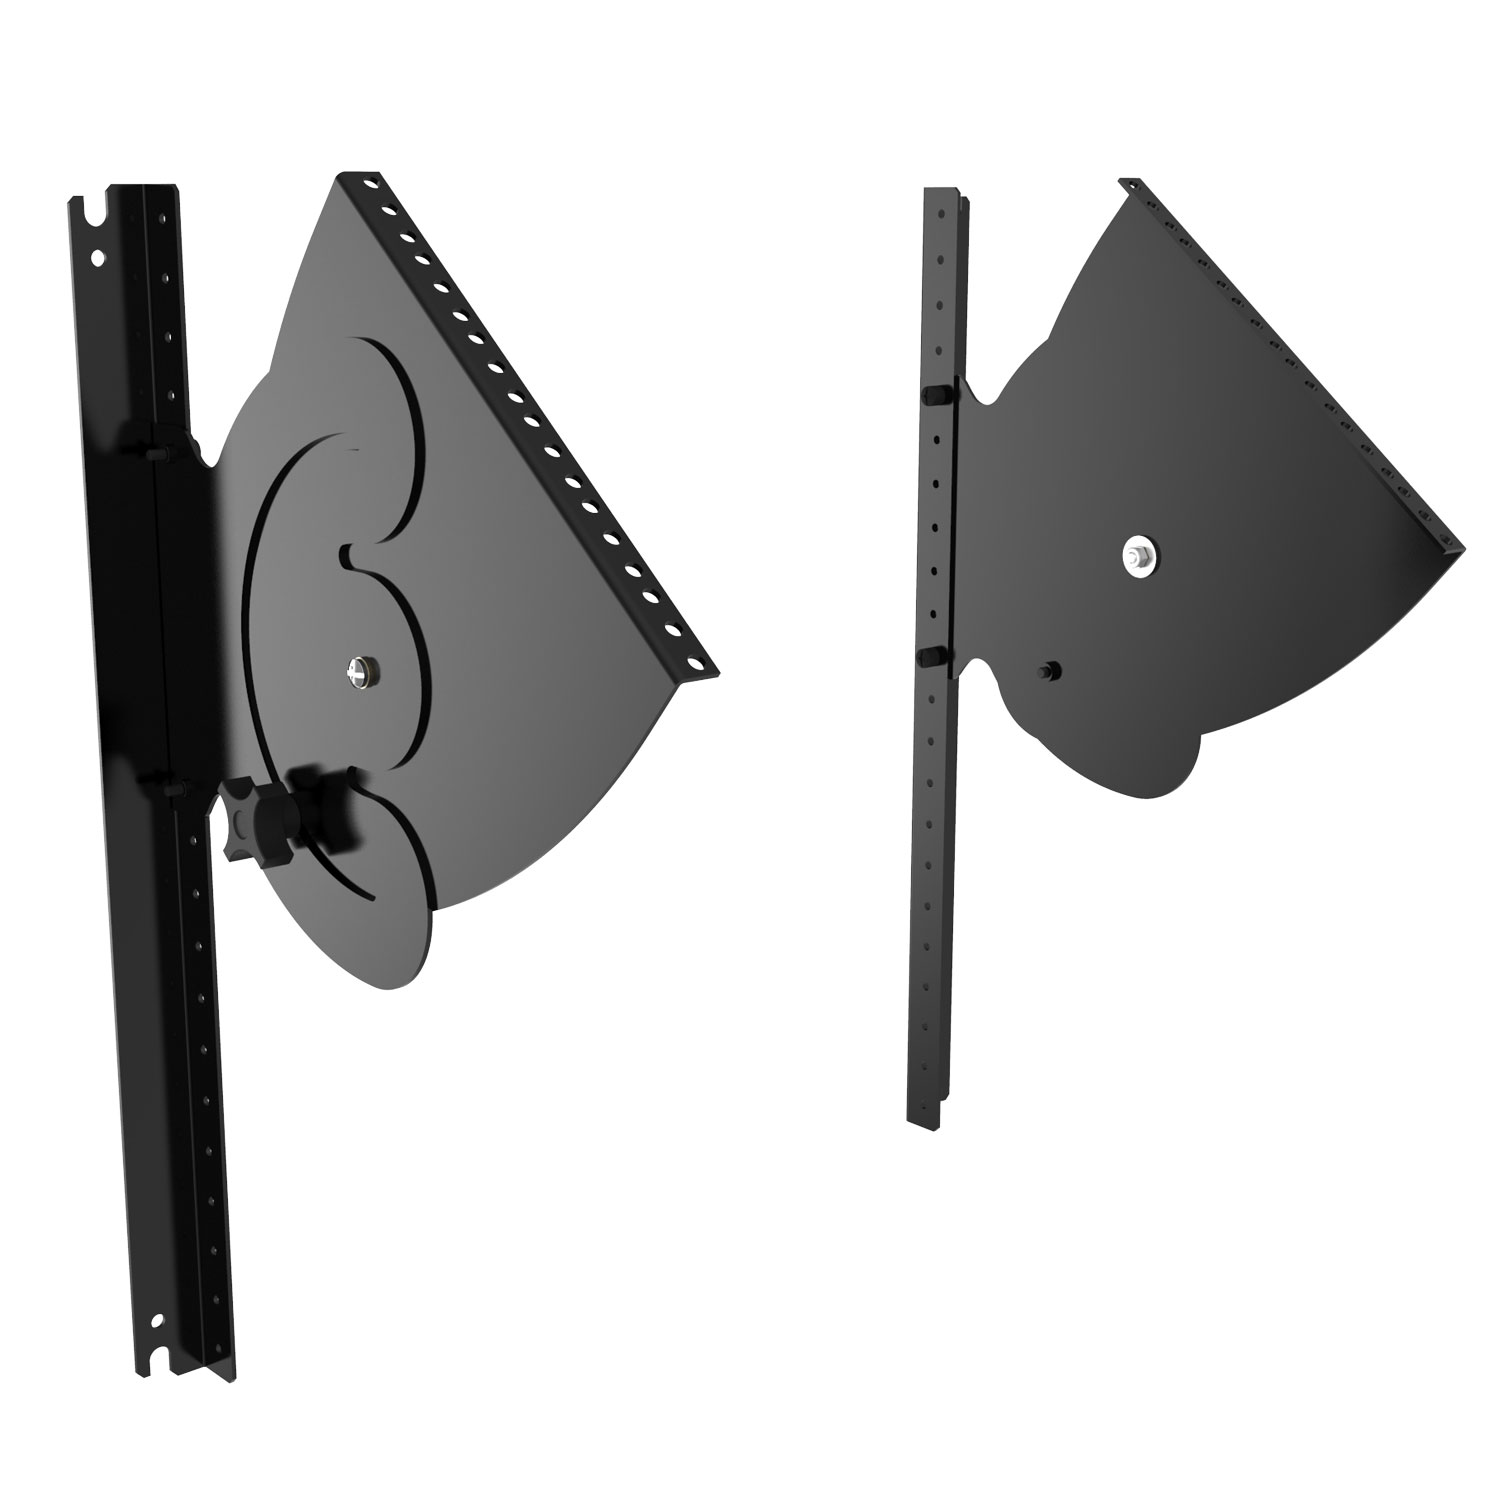 Eclipse Rack Panel ERP Series For use with Eclipse Enclosure Series